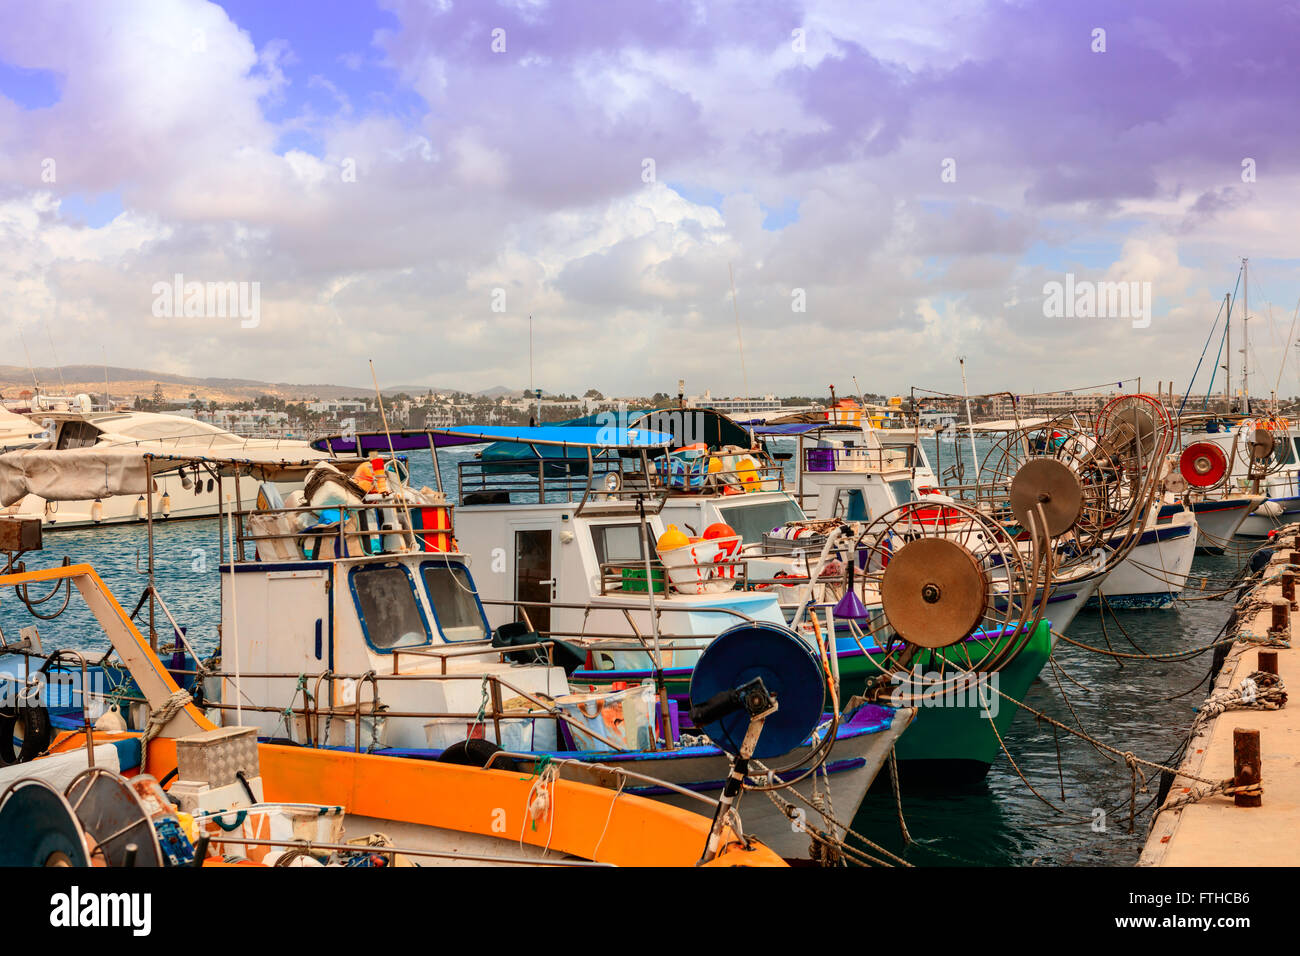 Row of fishing boats in Paphos harbor. - Stock Image